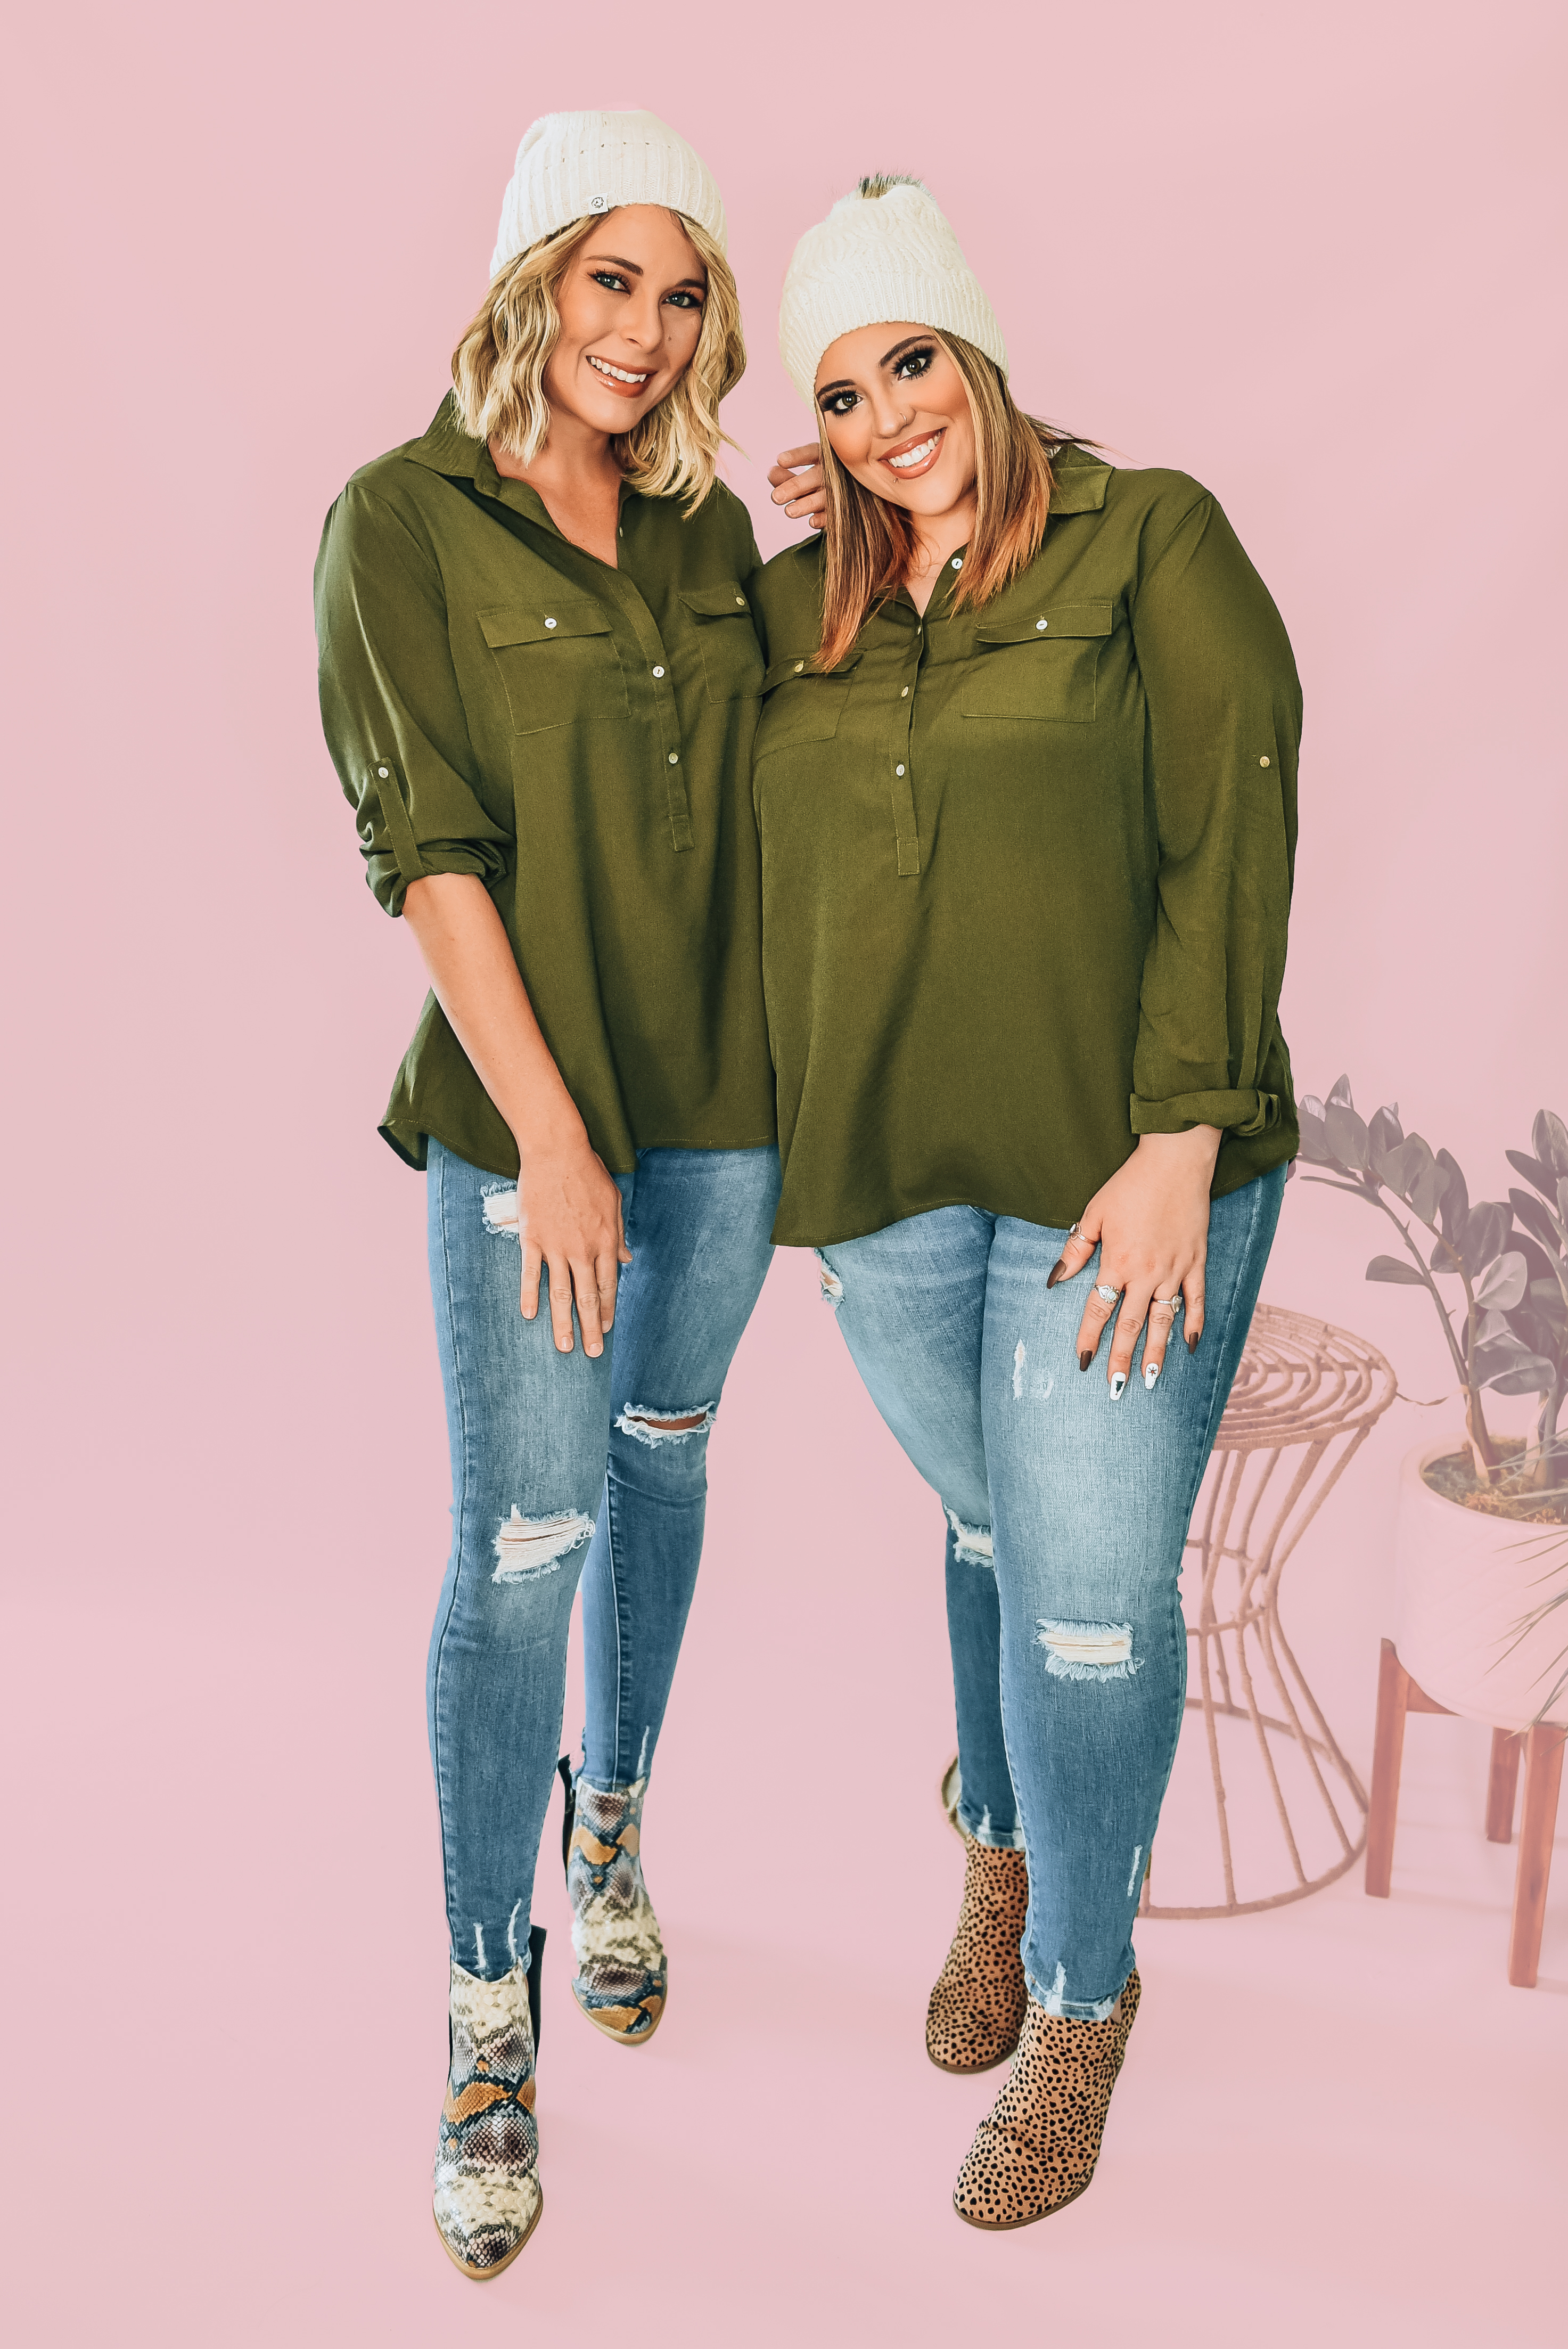 """OLIVE GREEN BUTTON UP BLOUSE WITH BUTTON CUFFS.  100% POLYESTER. AMANDA IS 5'6""""  SIZE 2, WEARING A SMALL. NIKI IS A SIZE 14, WEARING AN XL. XS 0-2 S 4-6 M 8-10 L 10-12 XL 12-14"""